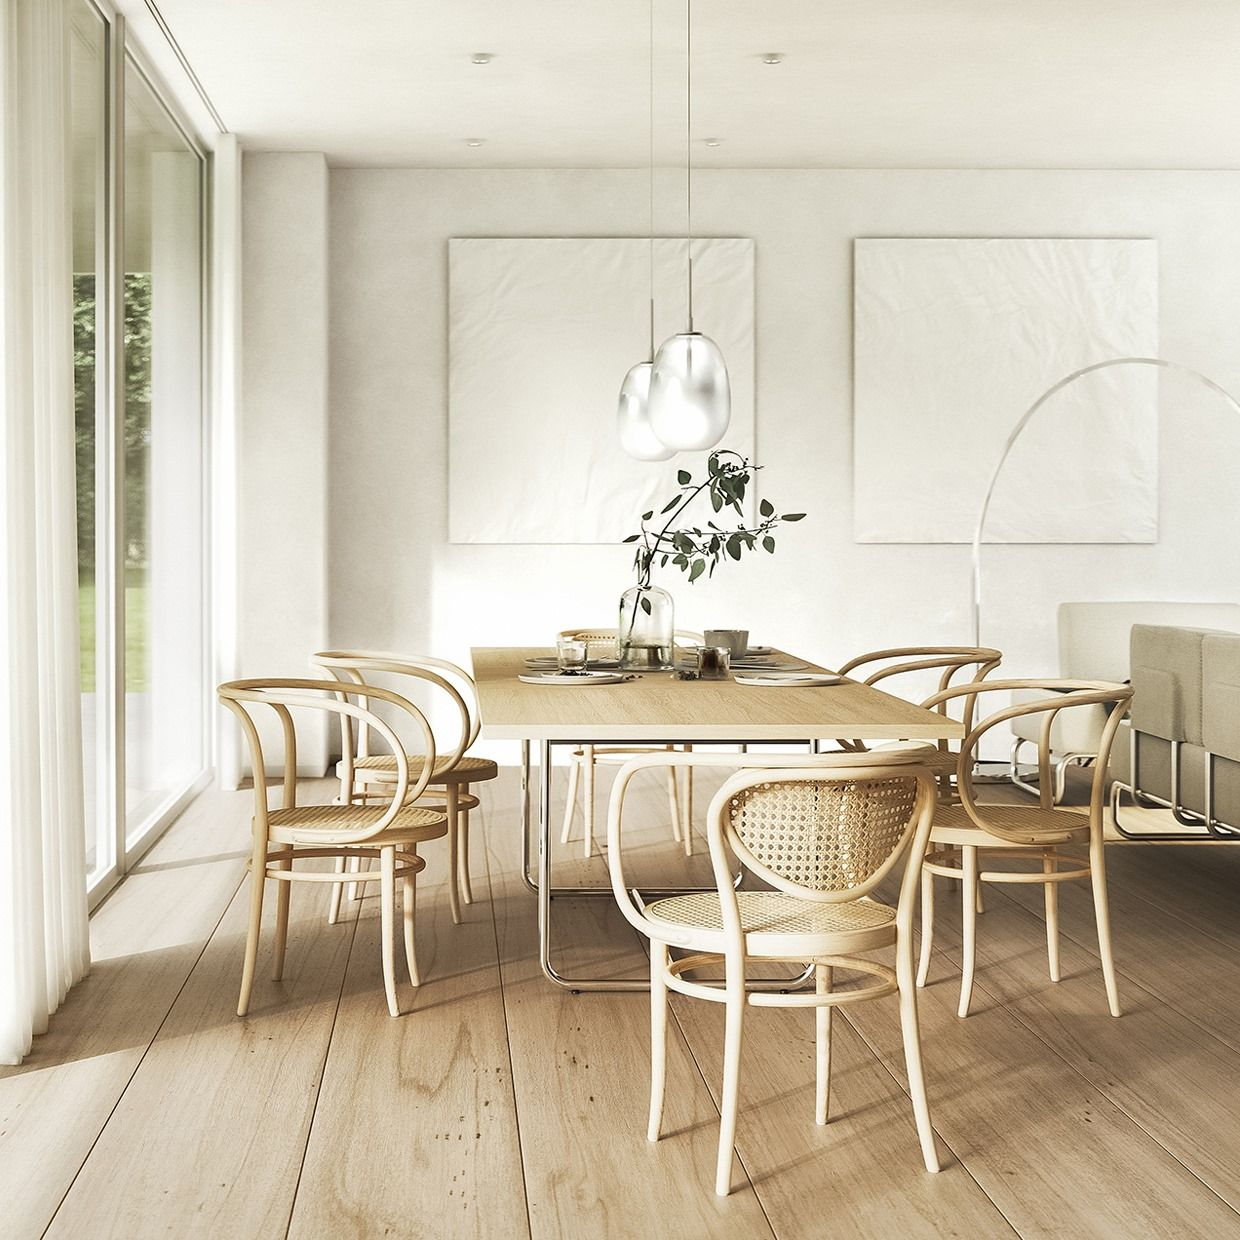 Thonet Campaign Icons Of Thonet Dining With Dining Room Interiors Contemporary Furniture Design Contemporary Table